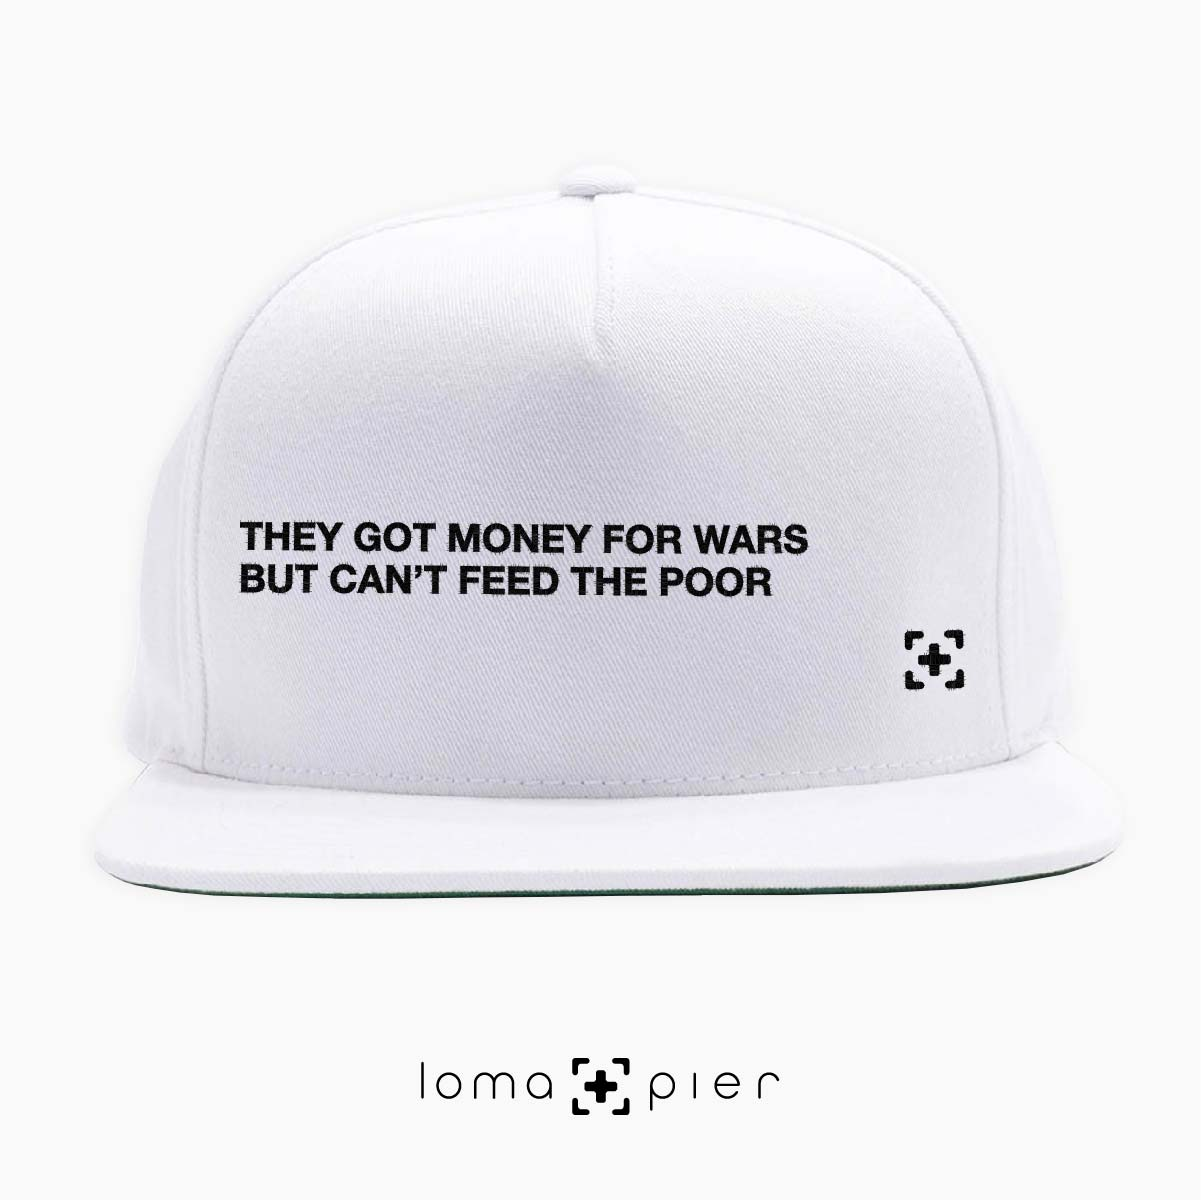 """they got money for wars but can't feed the poor"" tupac lyrics hat at the loma and pier hat shop"